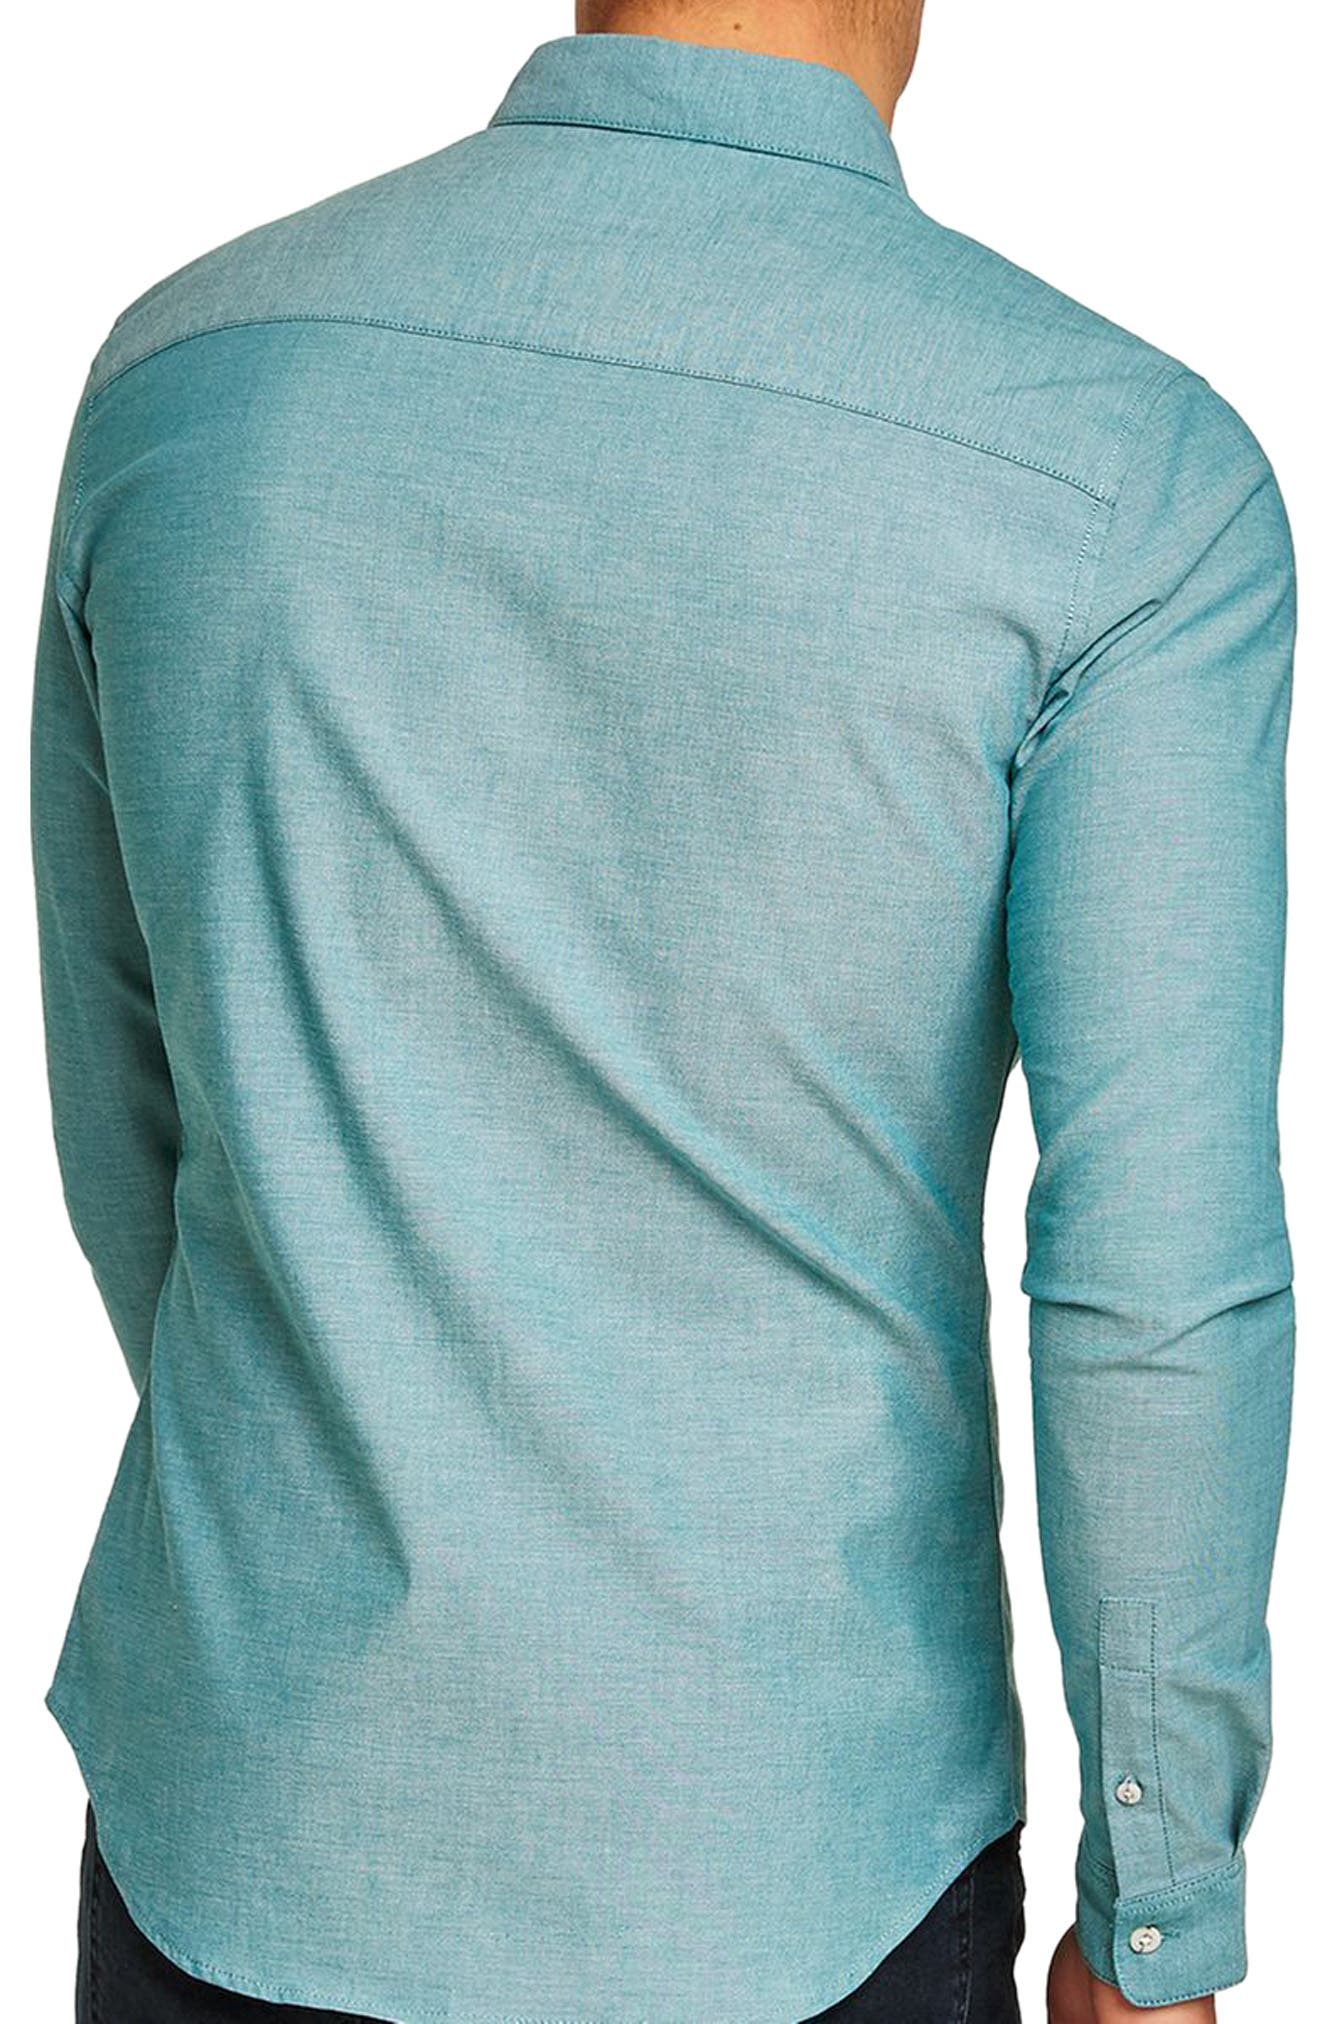 Muscle Fit Oxford Shirt,                             Alternate thumbnail 2, color,                             400